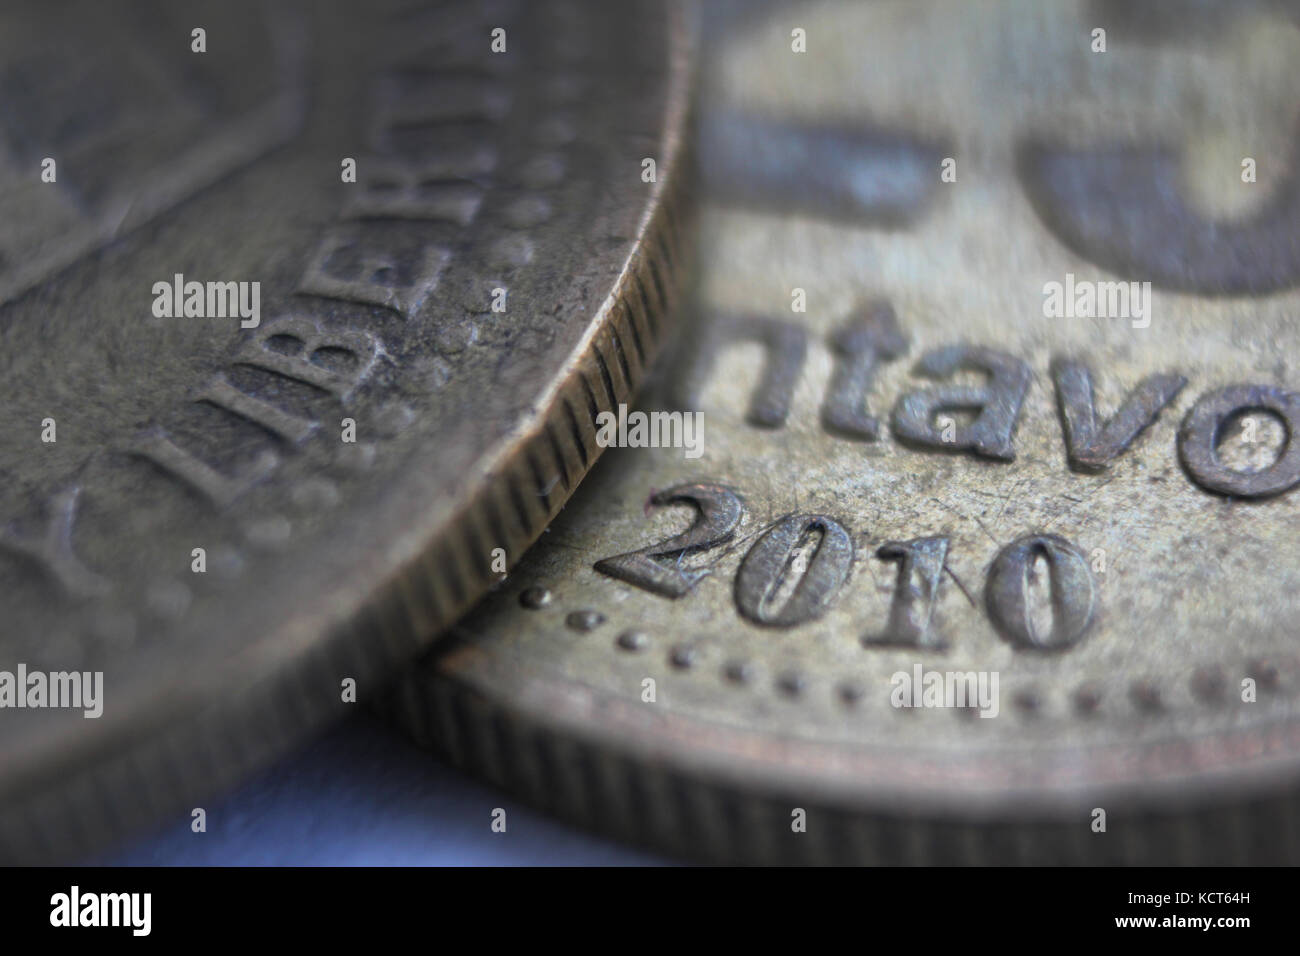 Close-up of coins from Argentina - Stock Image